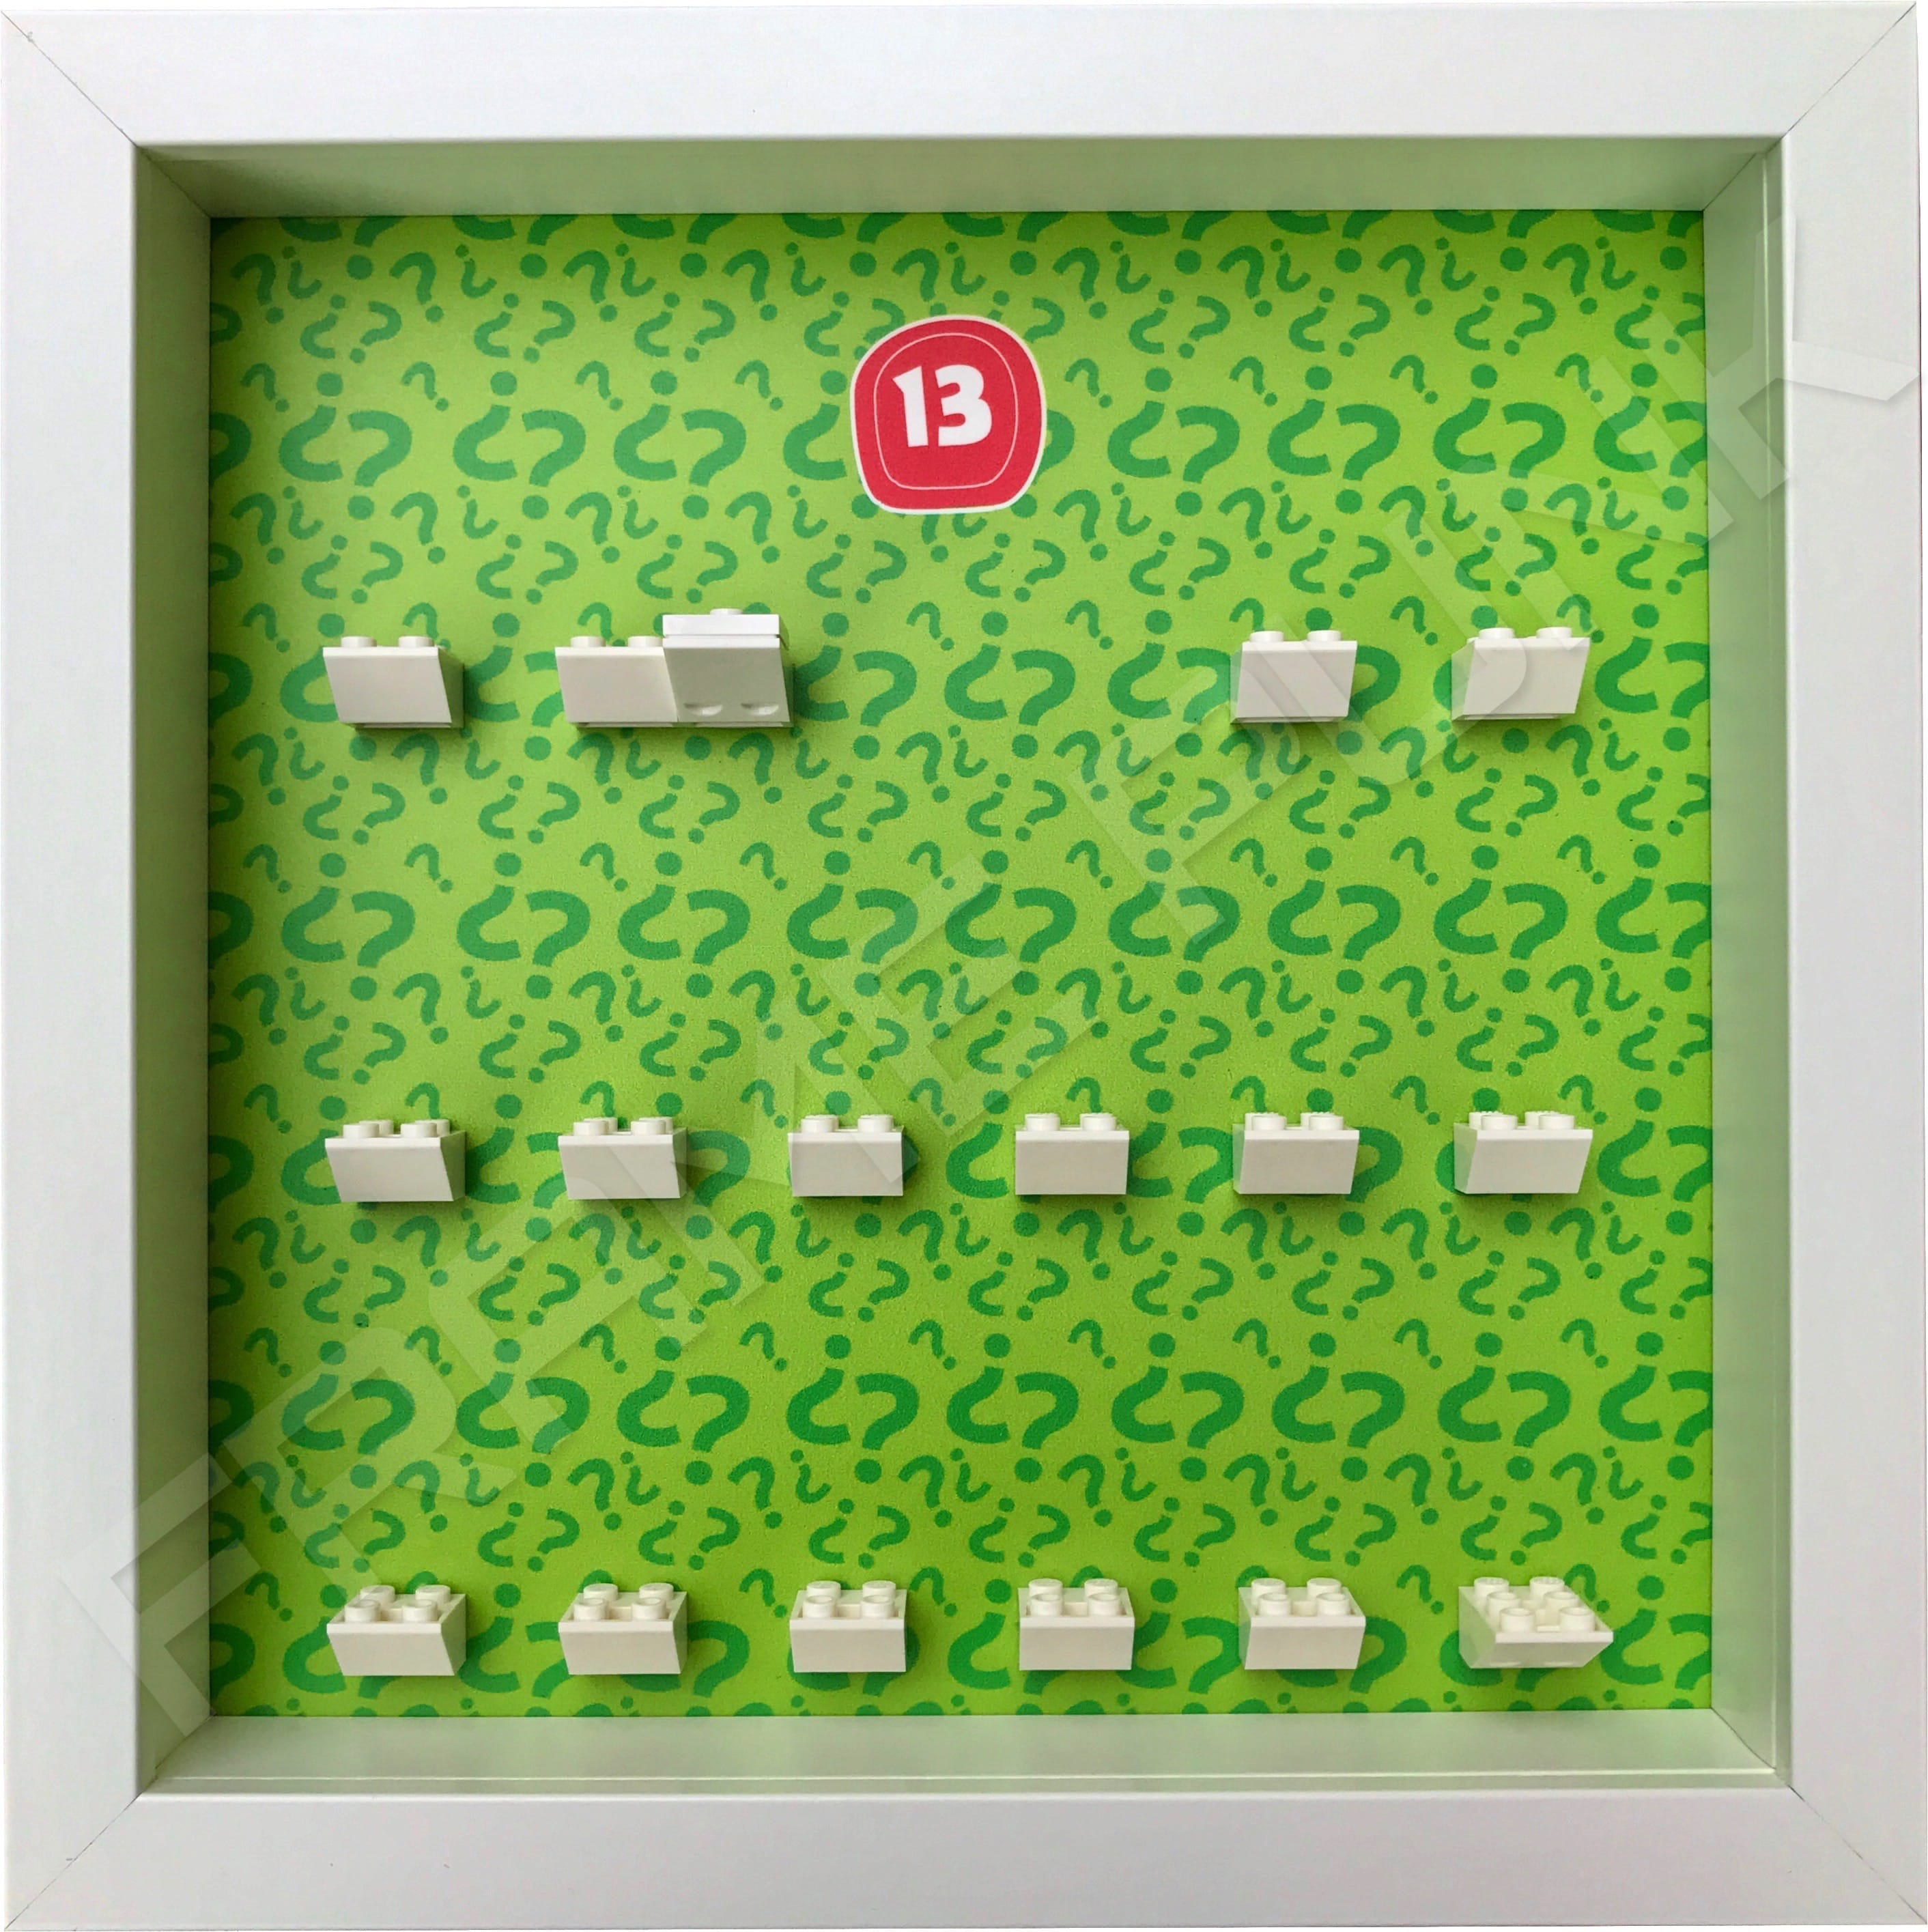 Lego minifigures series 13 display frame